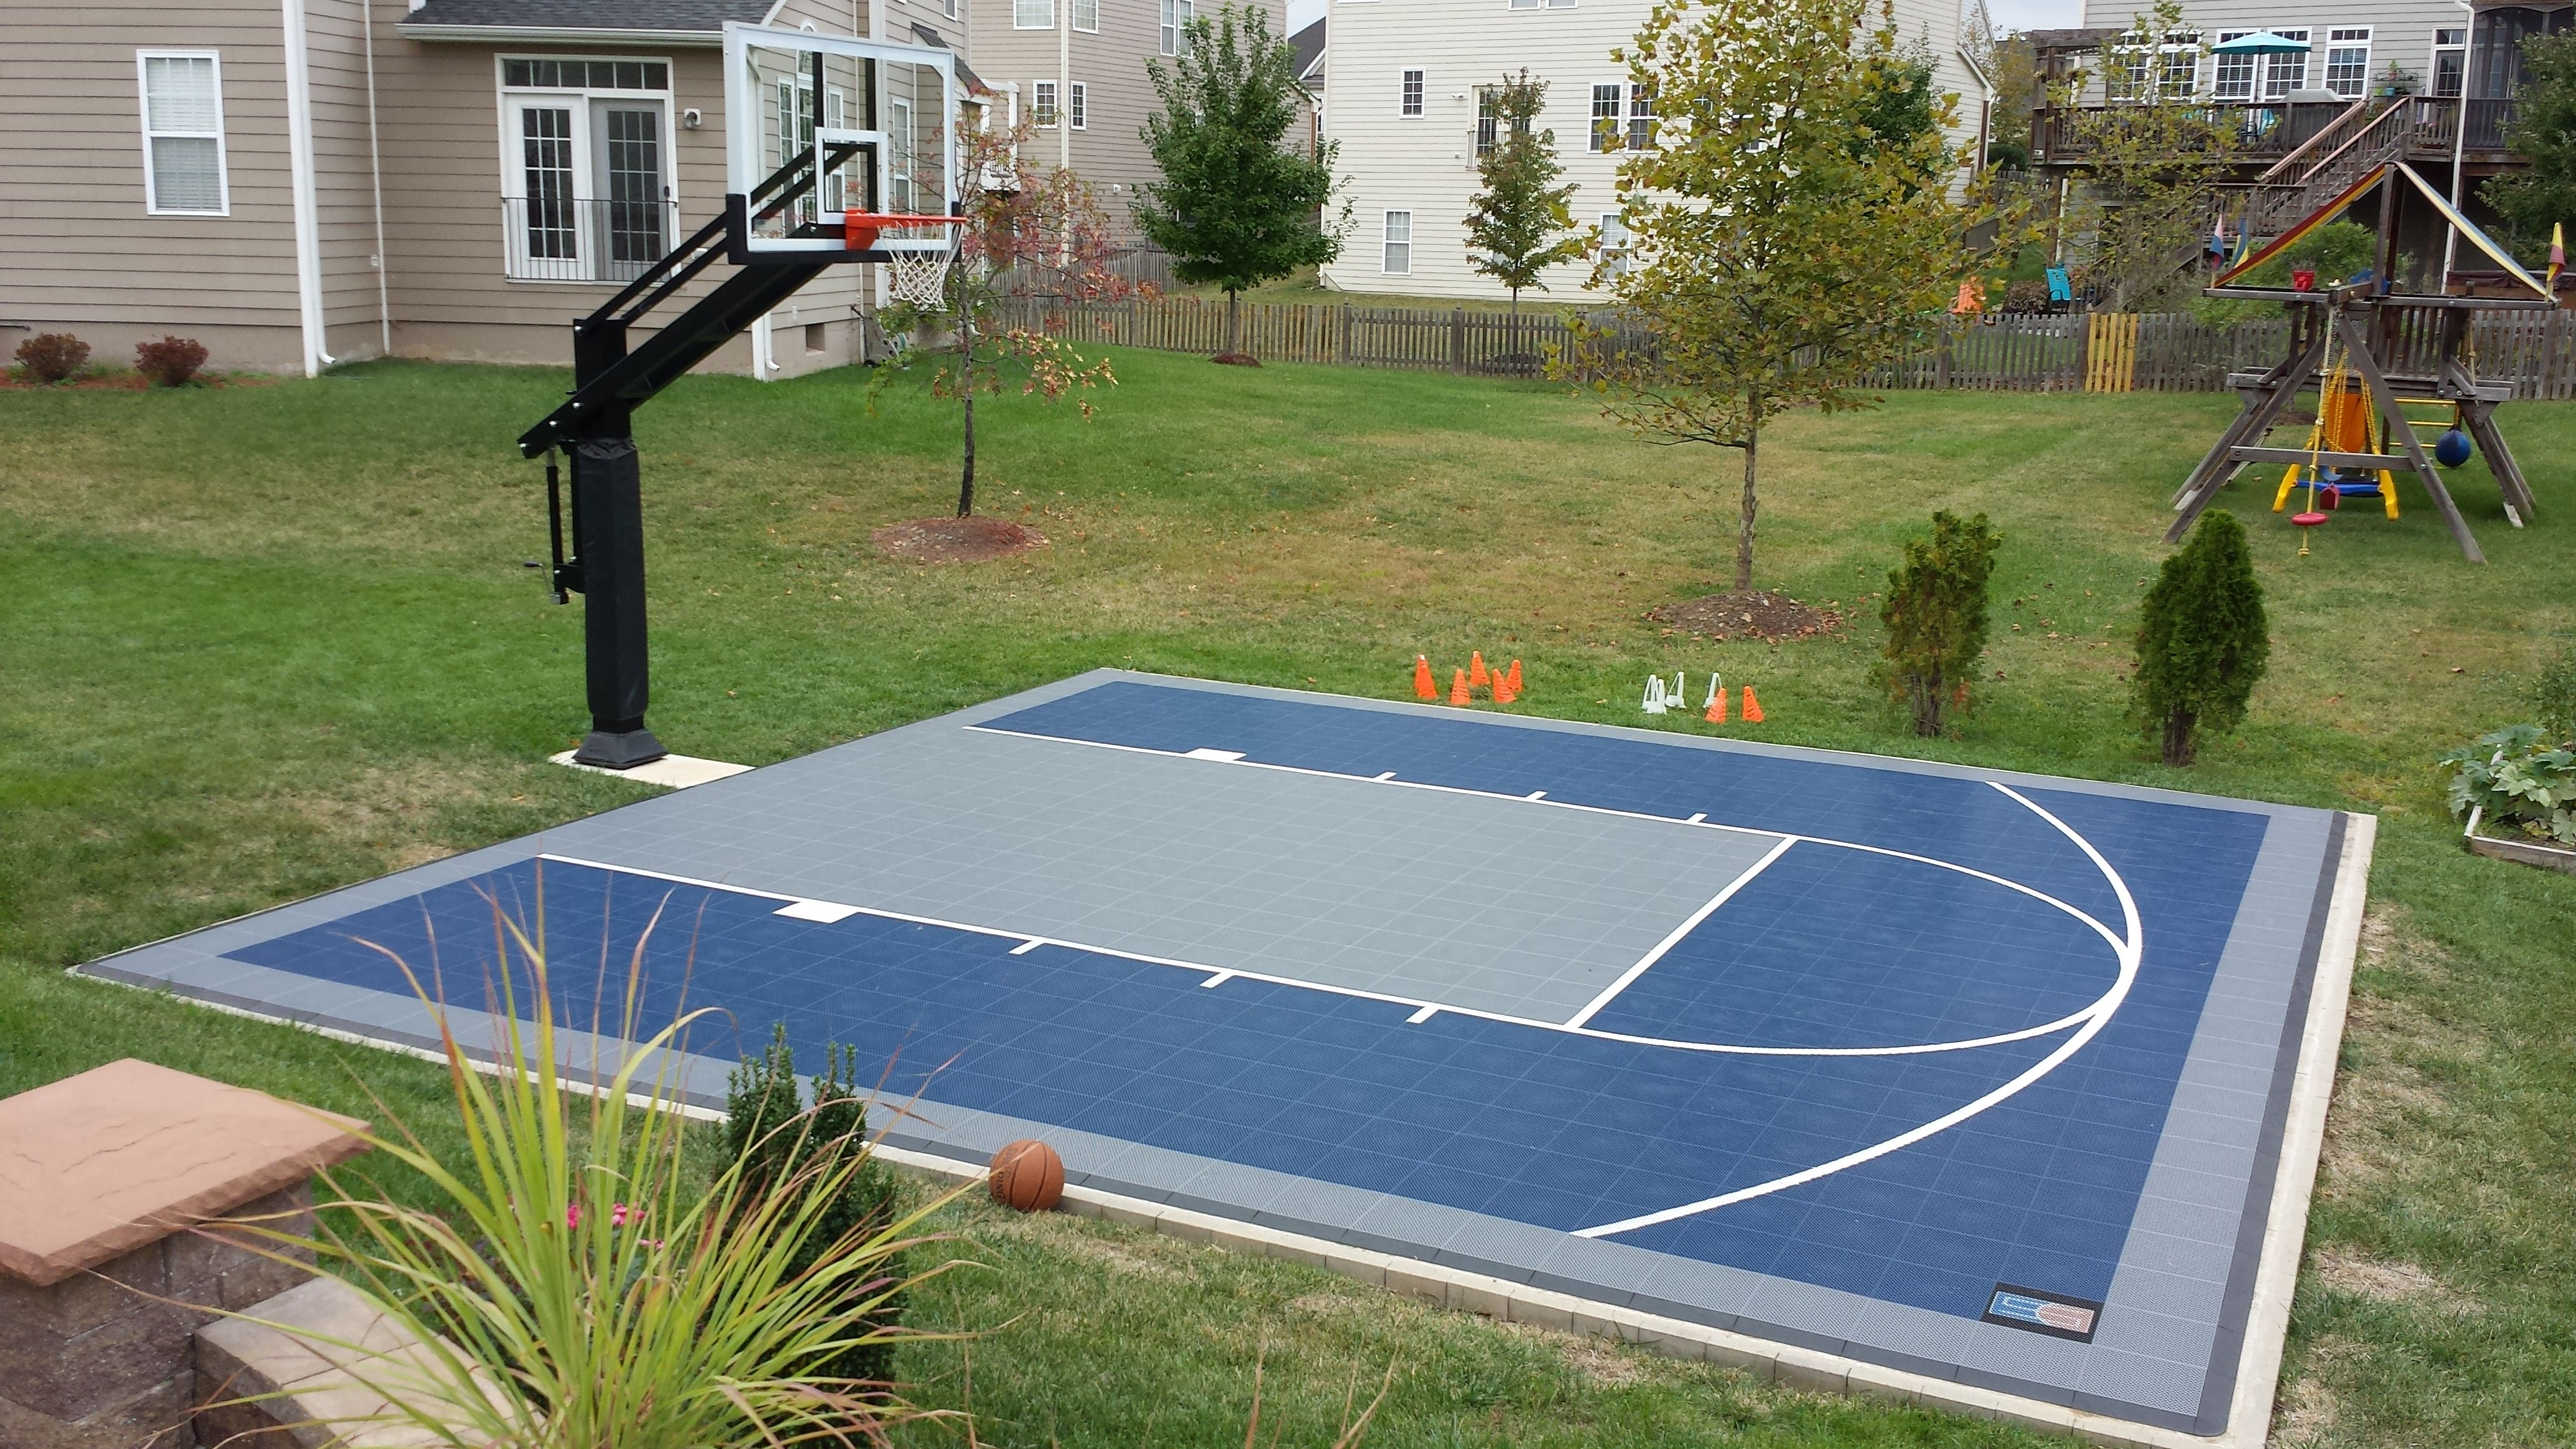 There Is Their Backyard You Can See Their Suspended Minimal Half Court Basketball Court Backyard Backyard Basketball Backyard Court